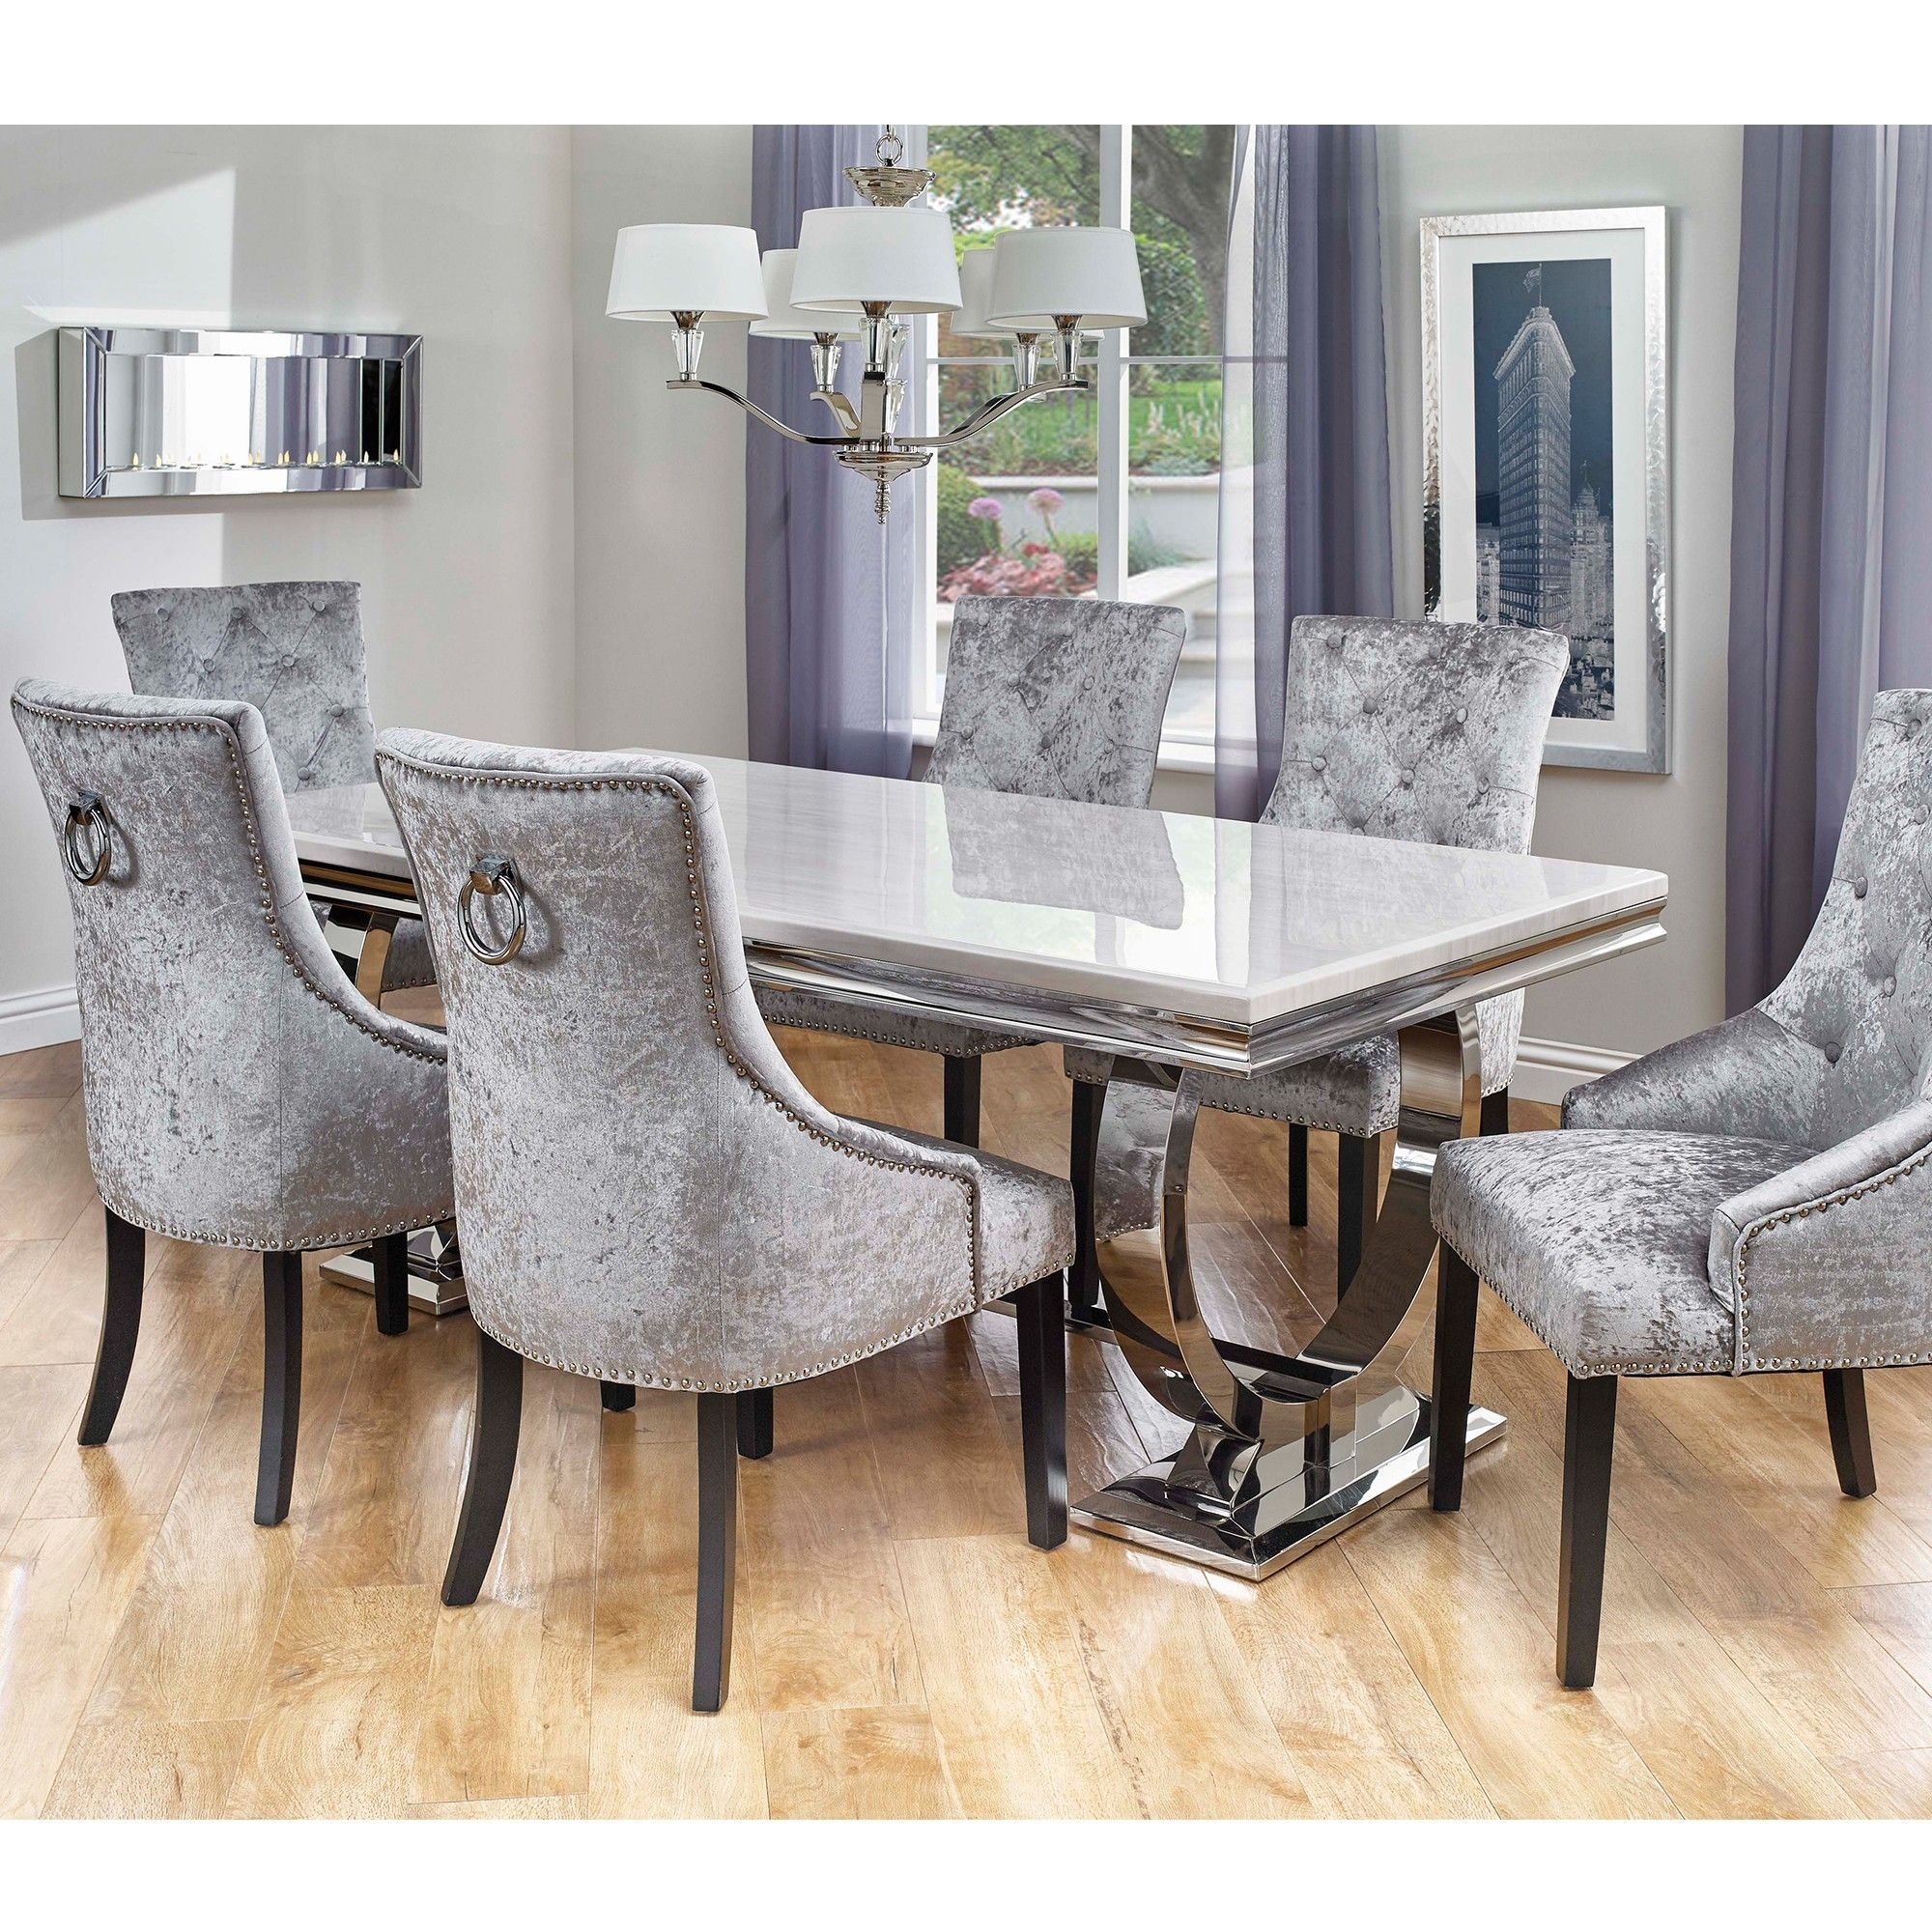 Pinbesthomezone On Dining Room & Bar Furniture | Pinterest Regarding Most Up To Date Palazzo 6 Piece Rectangle Dining Sets With Joss Side Chairs (Photo 8 of 20)